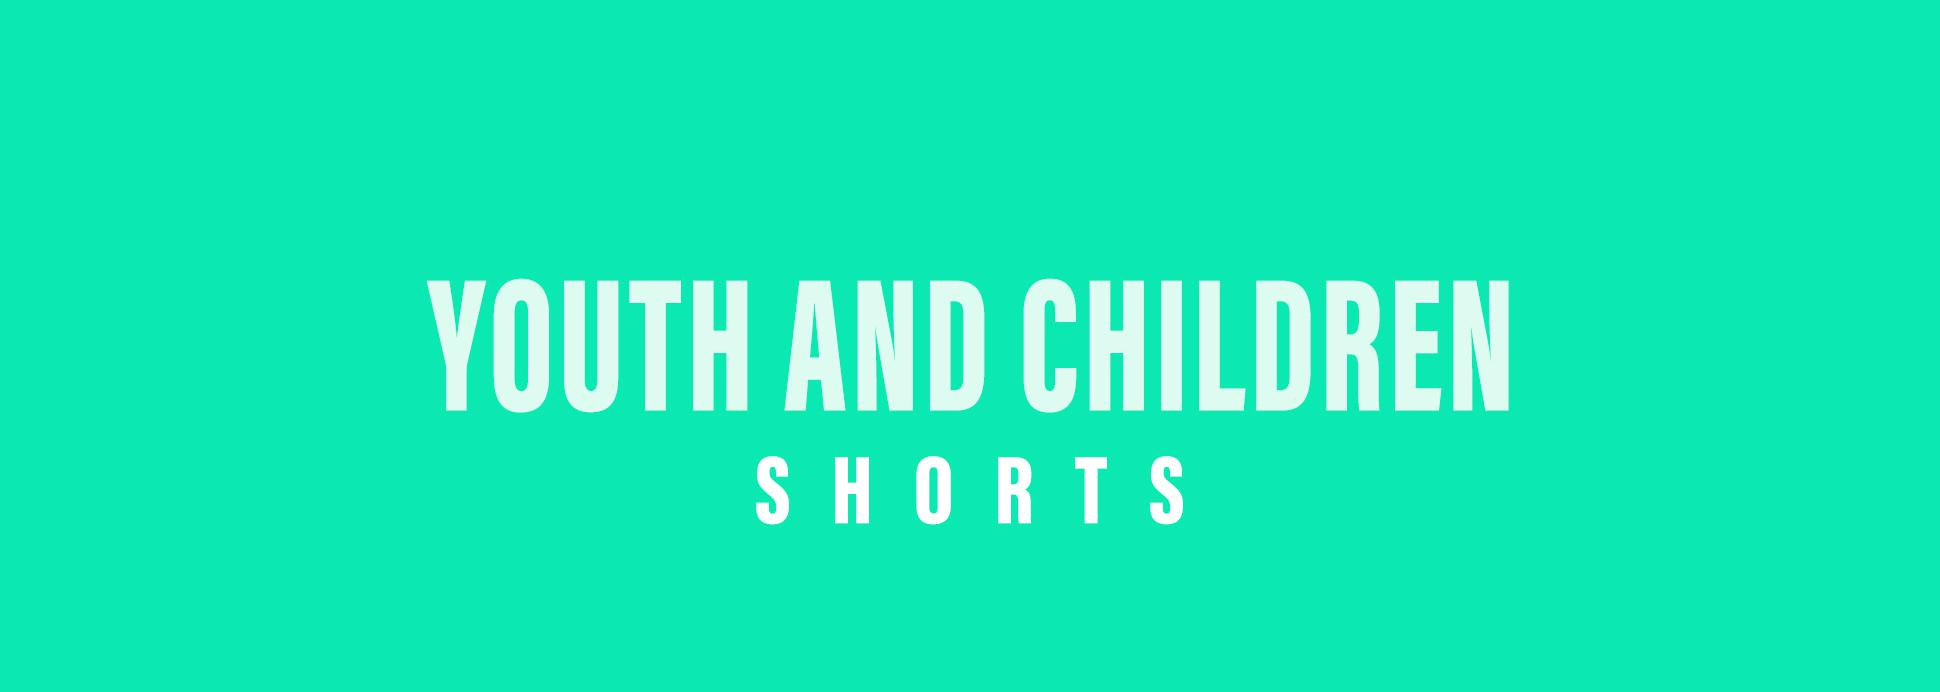 Shorts: Youth and Children